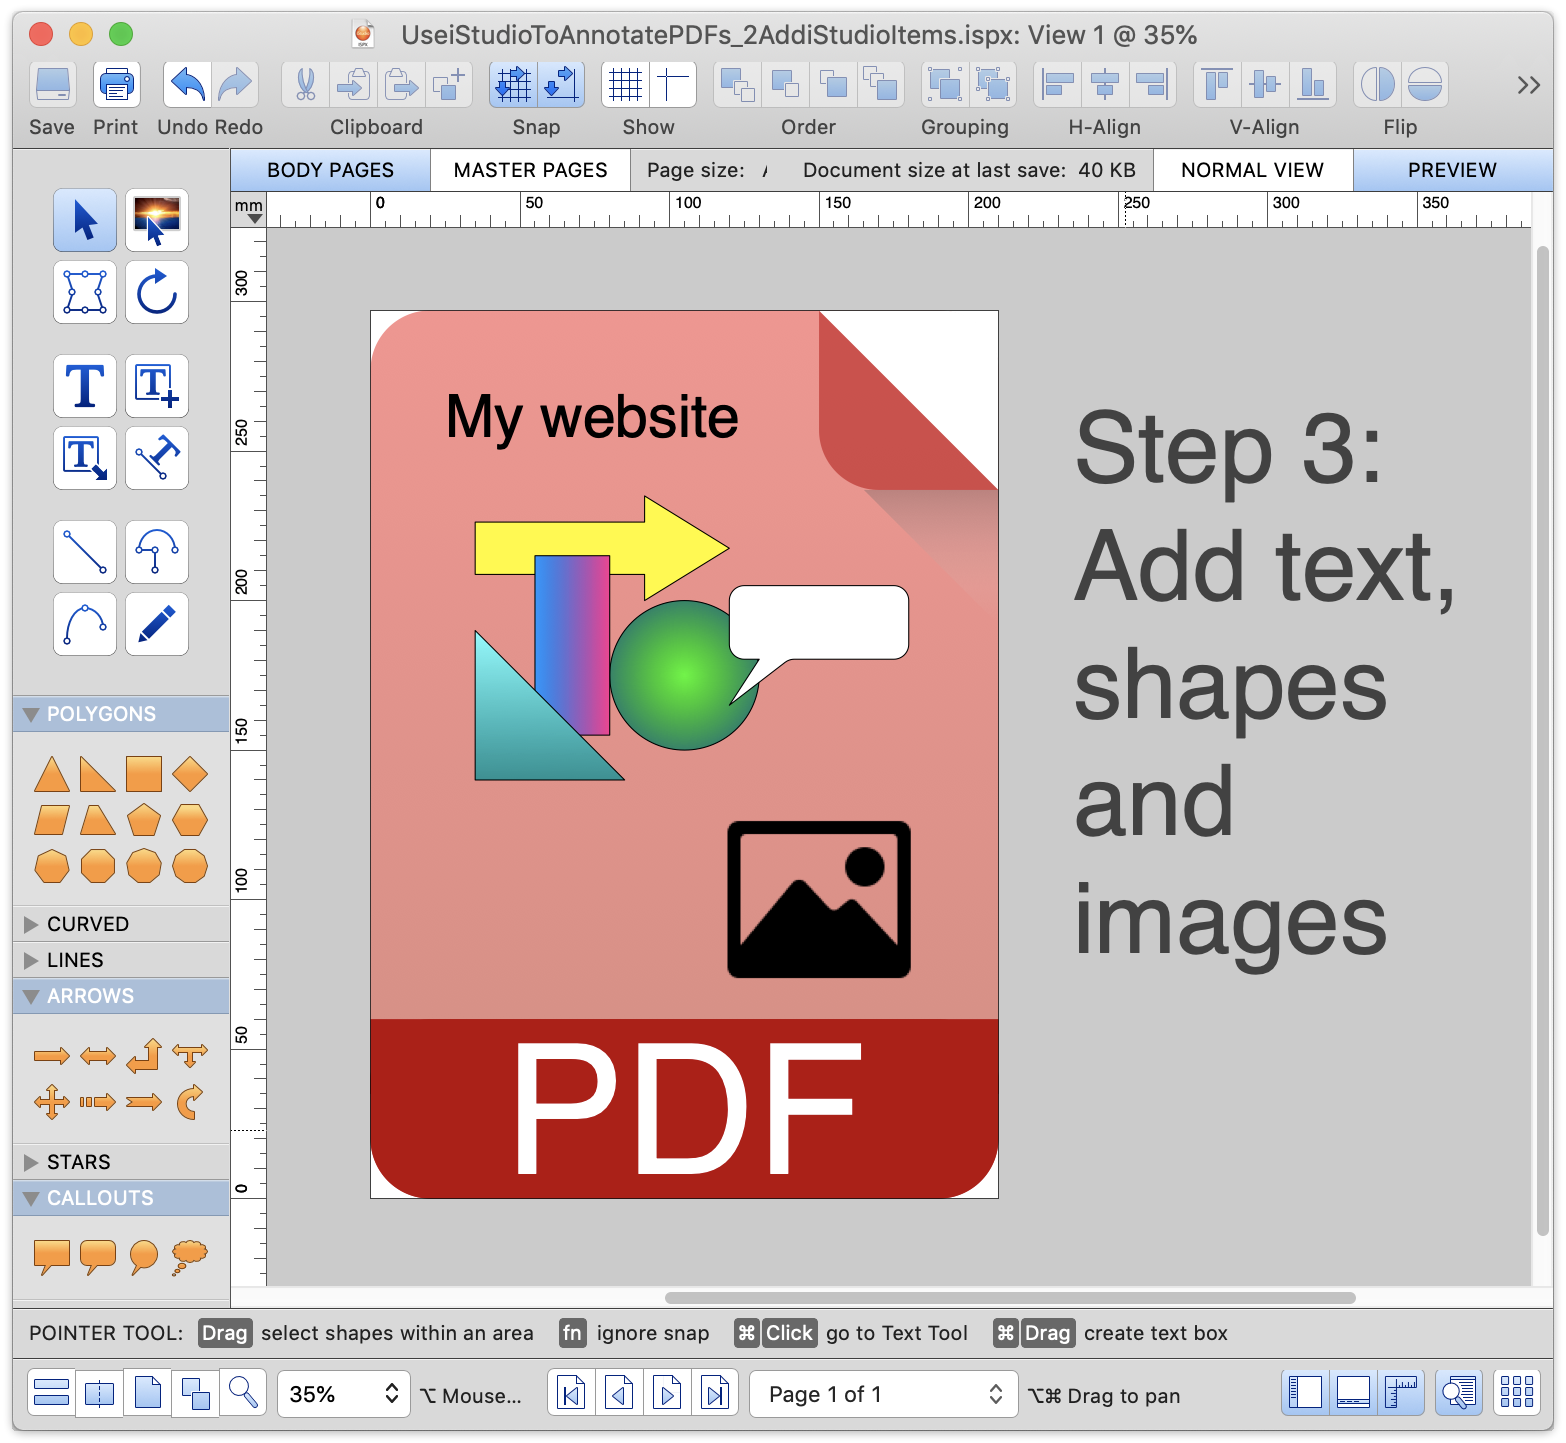 Annotate the PDF with text, shapes and images. Add hyperlinks to any of these items